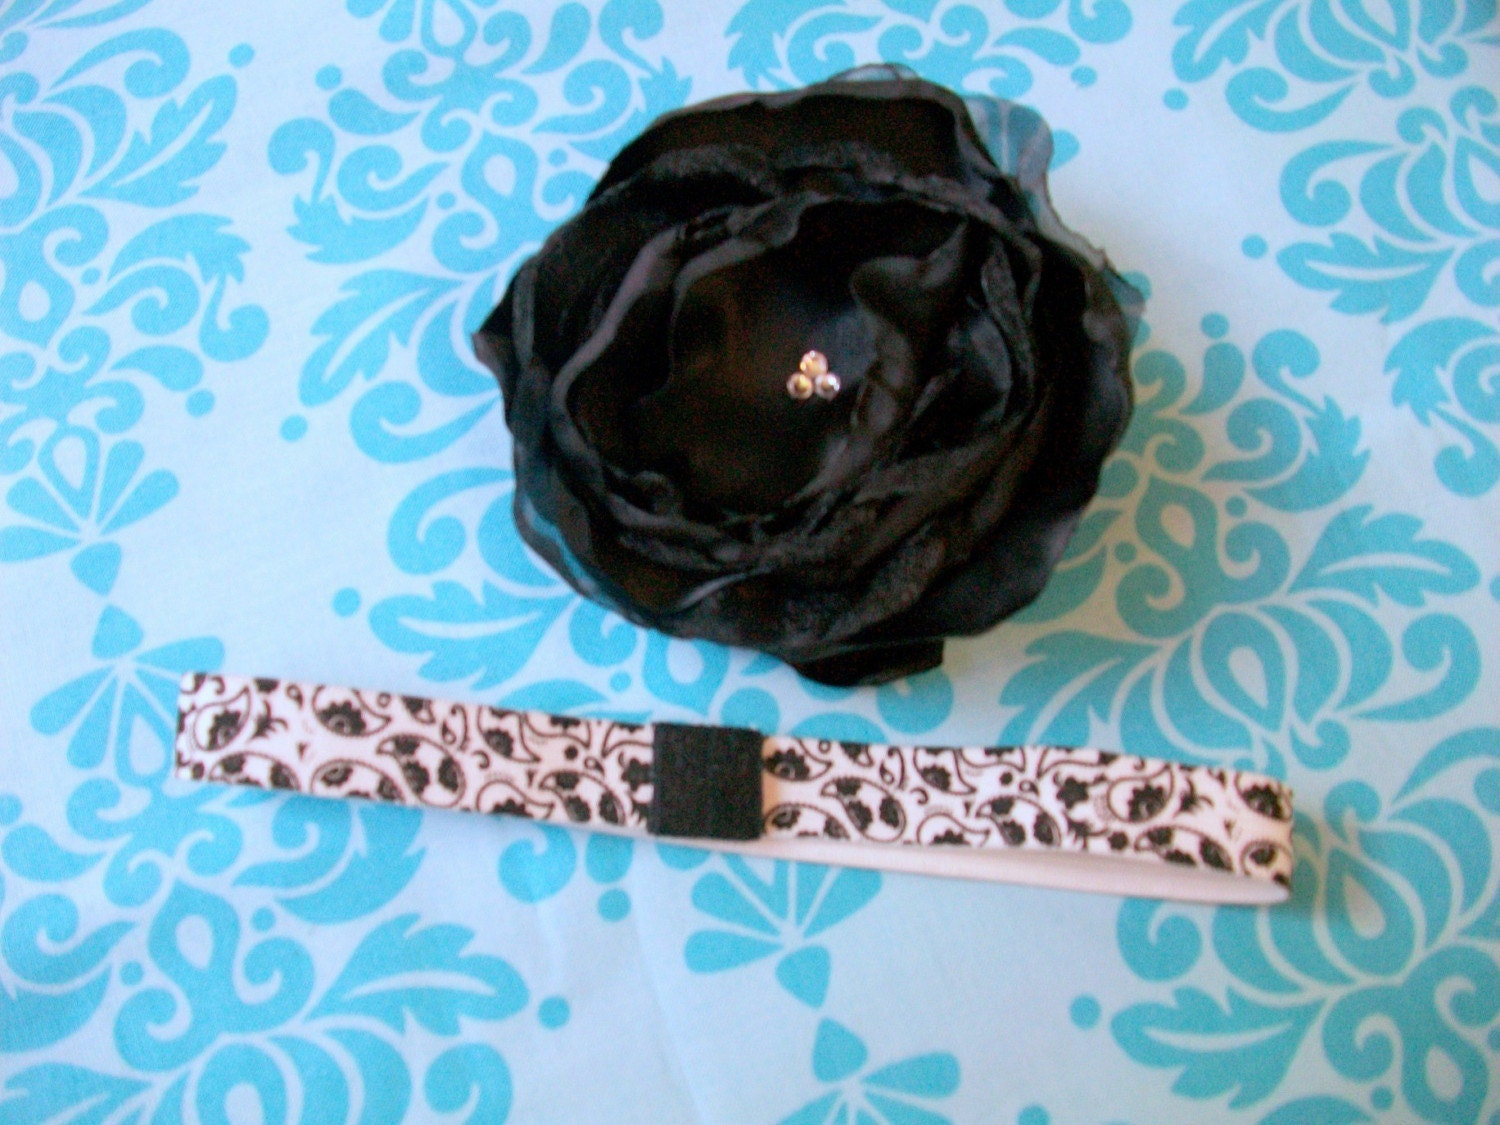 FREE SHIPPING--Sweet and Sassy Beautiful Black Handmade Silk Flower on Interchangeable Soft Satin Stretch White and Black Paisley Headband ALL SIZES available-- Newborn, Baby, Toddler through Adult